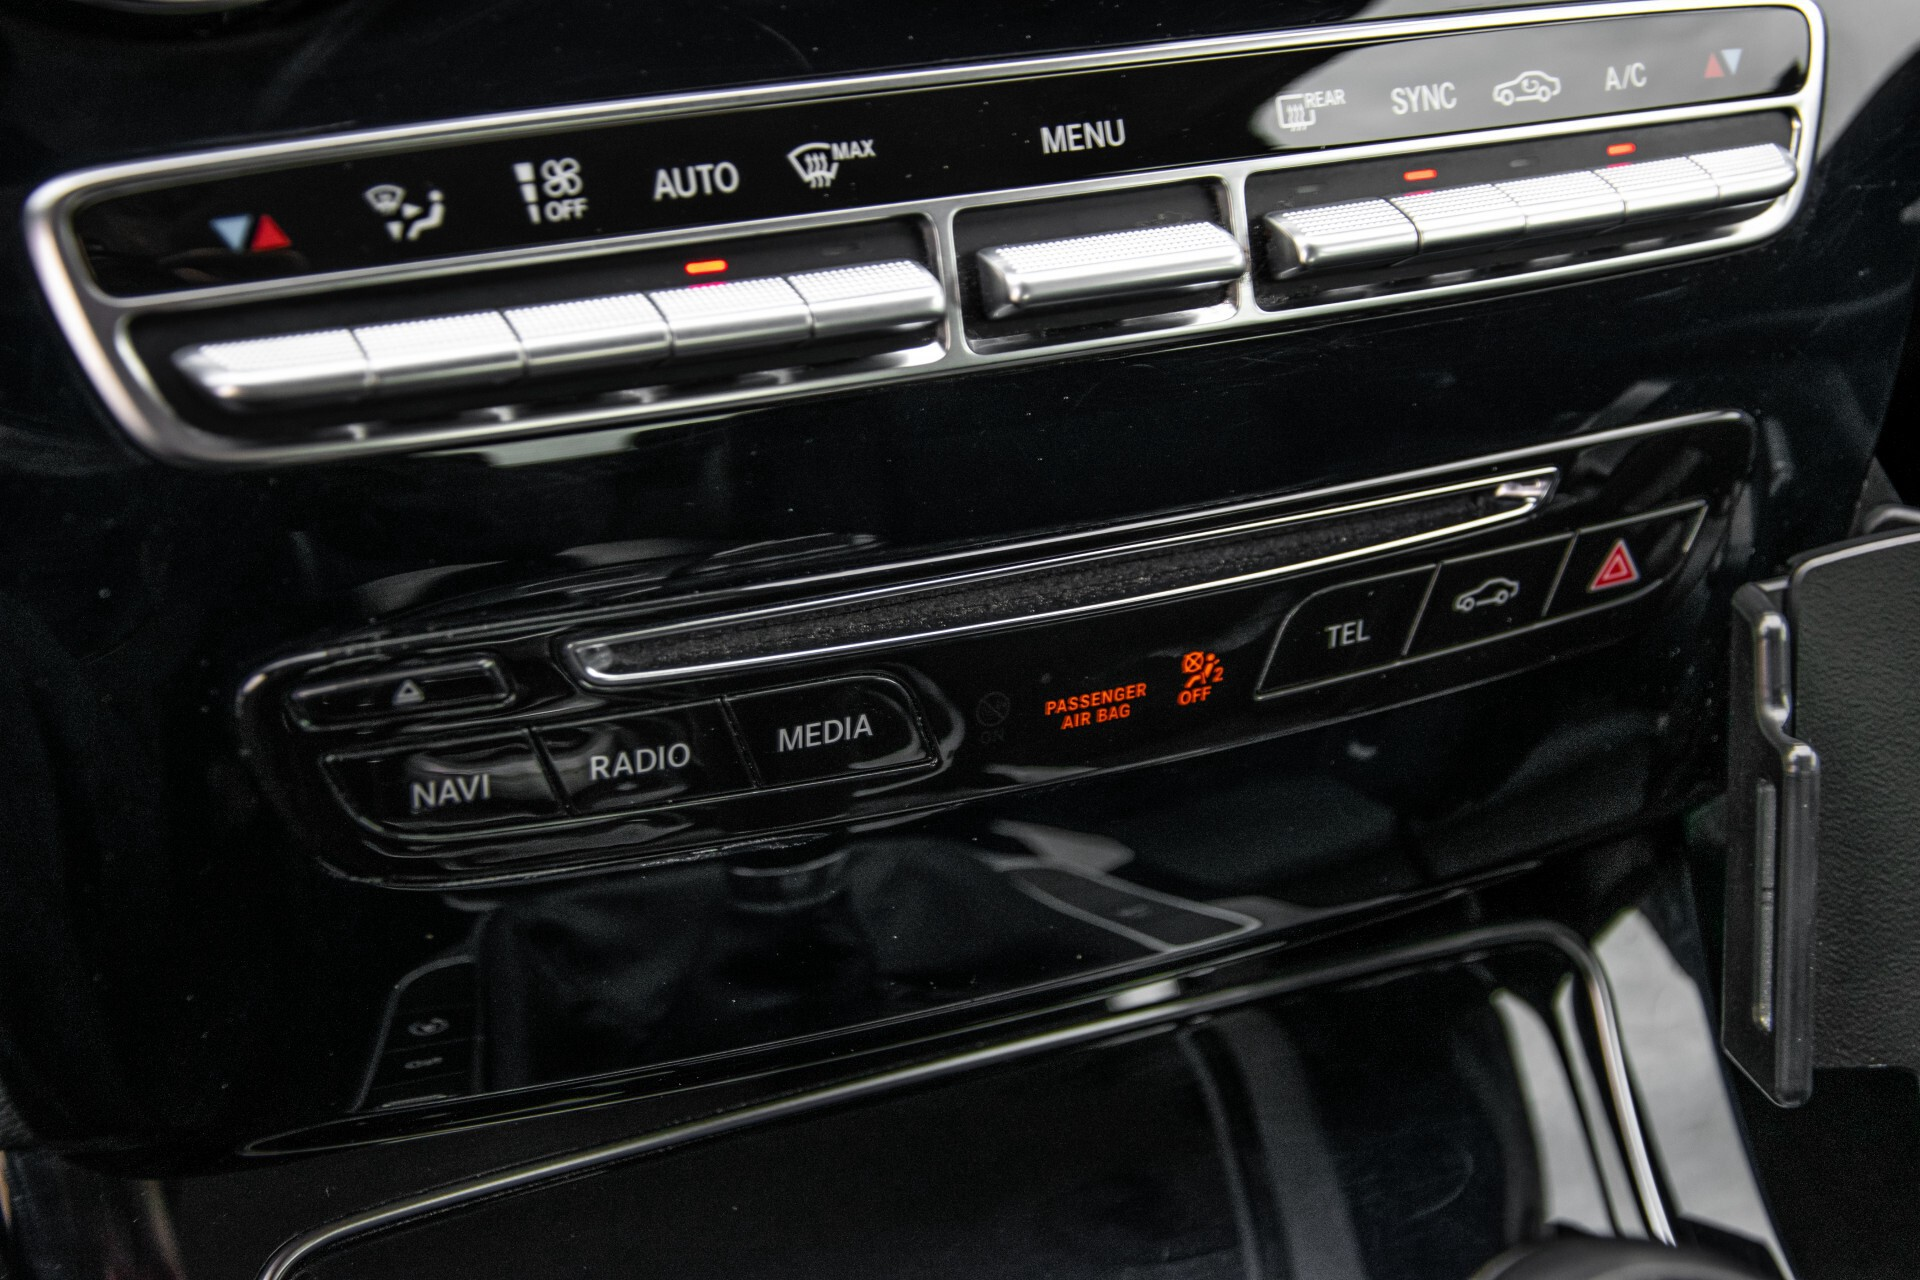 Mercedes-Benz C-Klasse 180 Bluetec Lease Edition Intelligent Light System/Cruise Control/Navi Foto 20